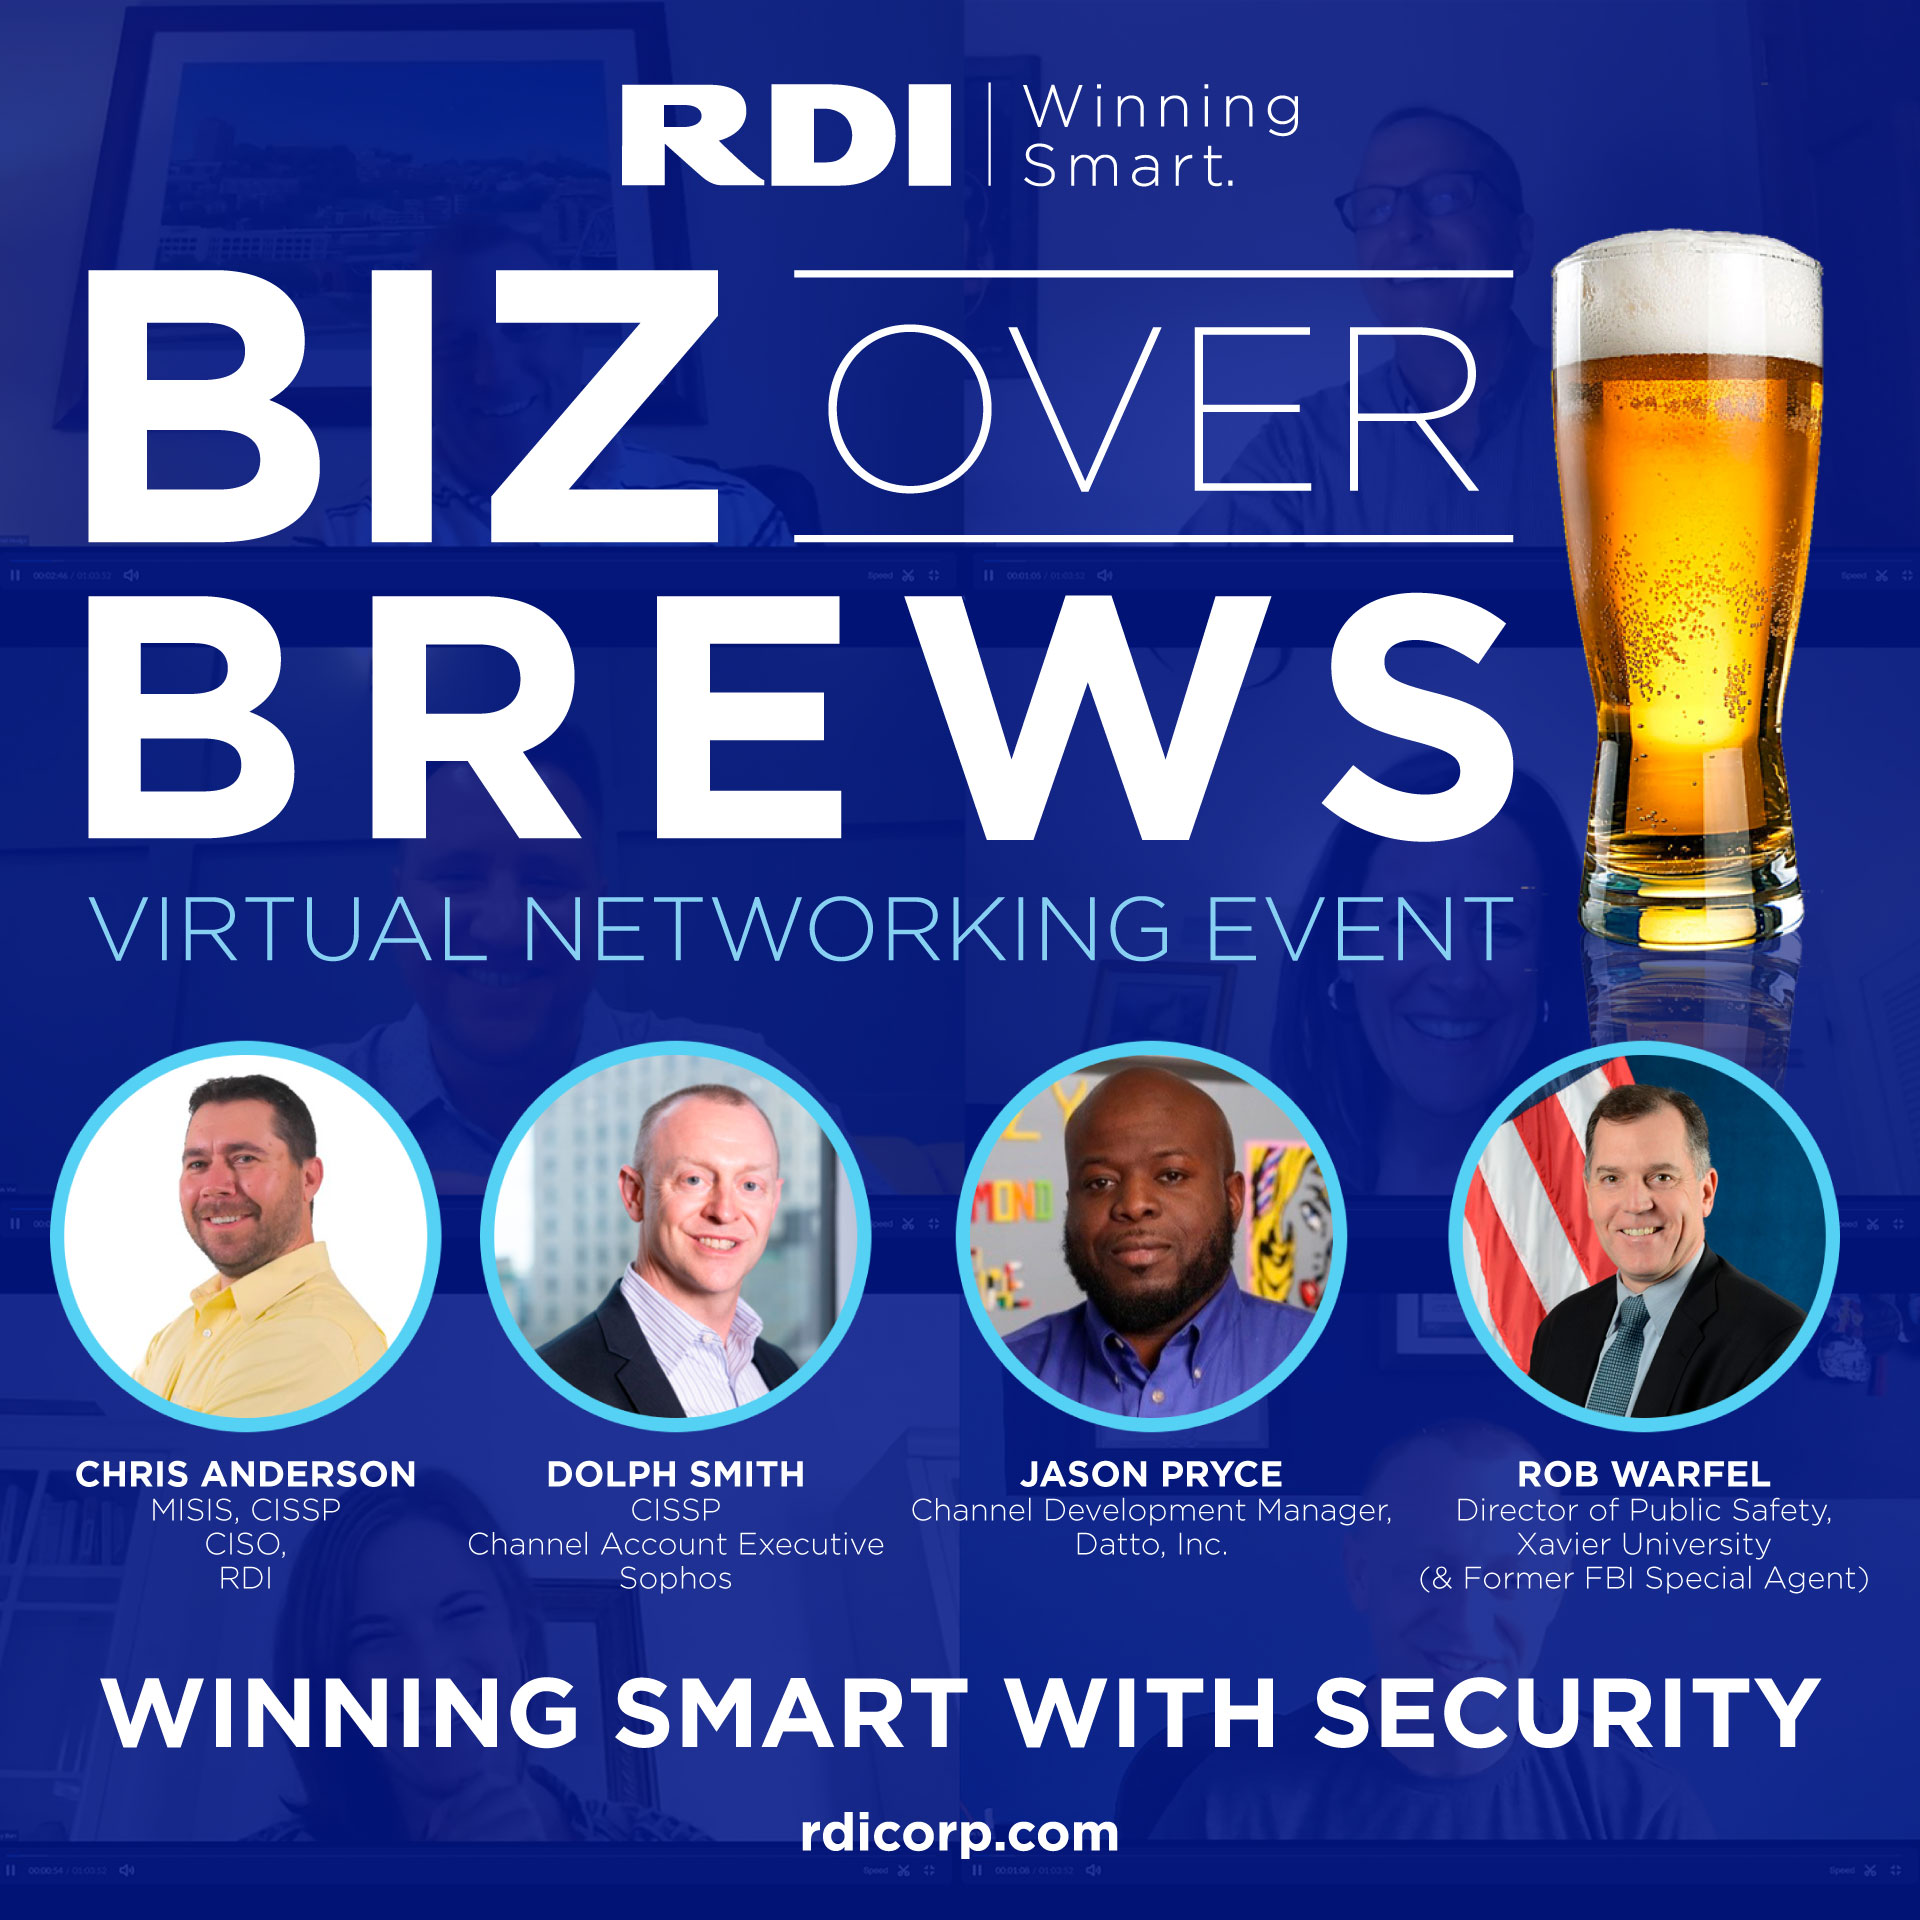 Biz Over Brews Networking Event - Winning Smart with Security